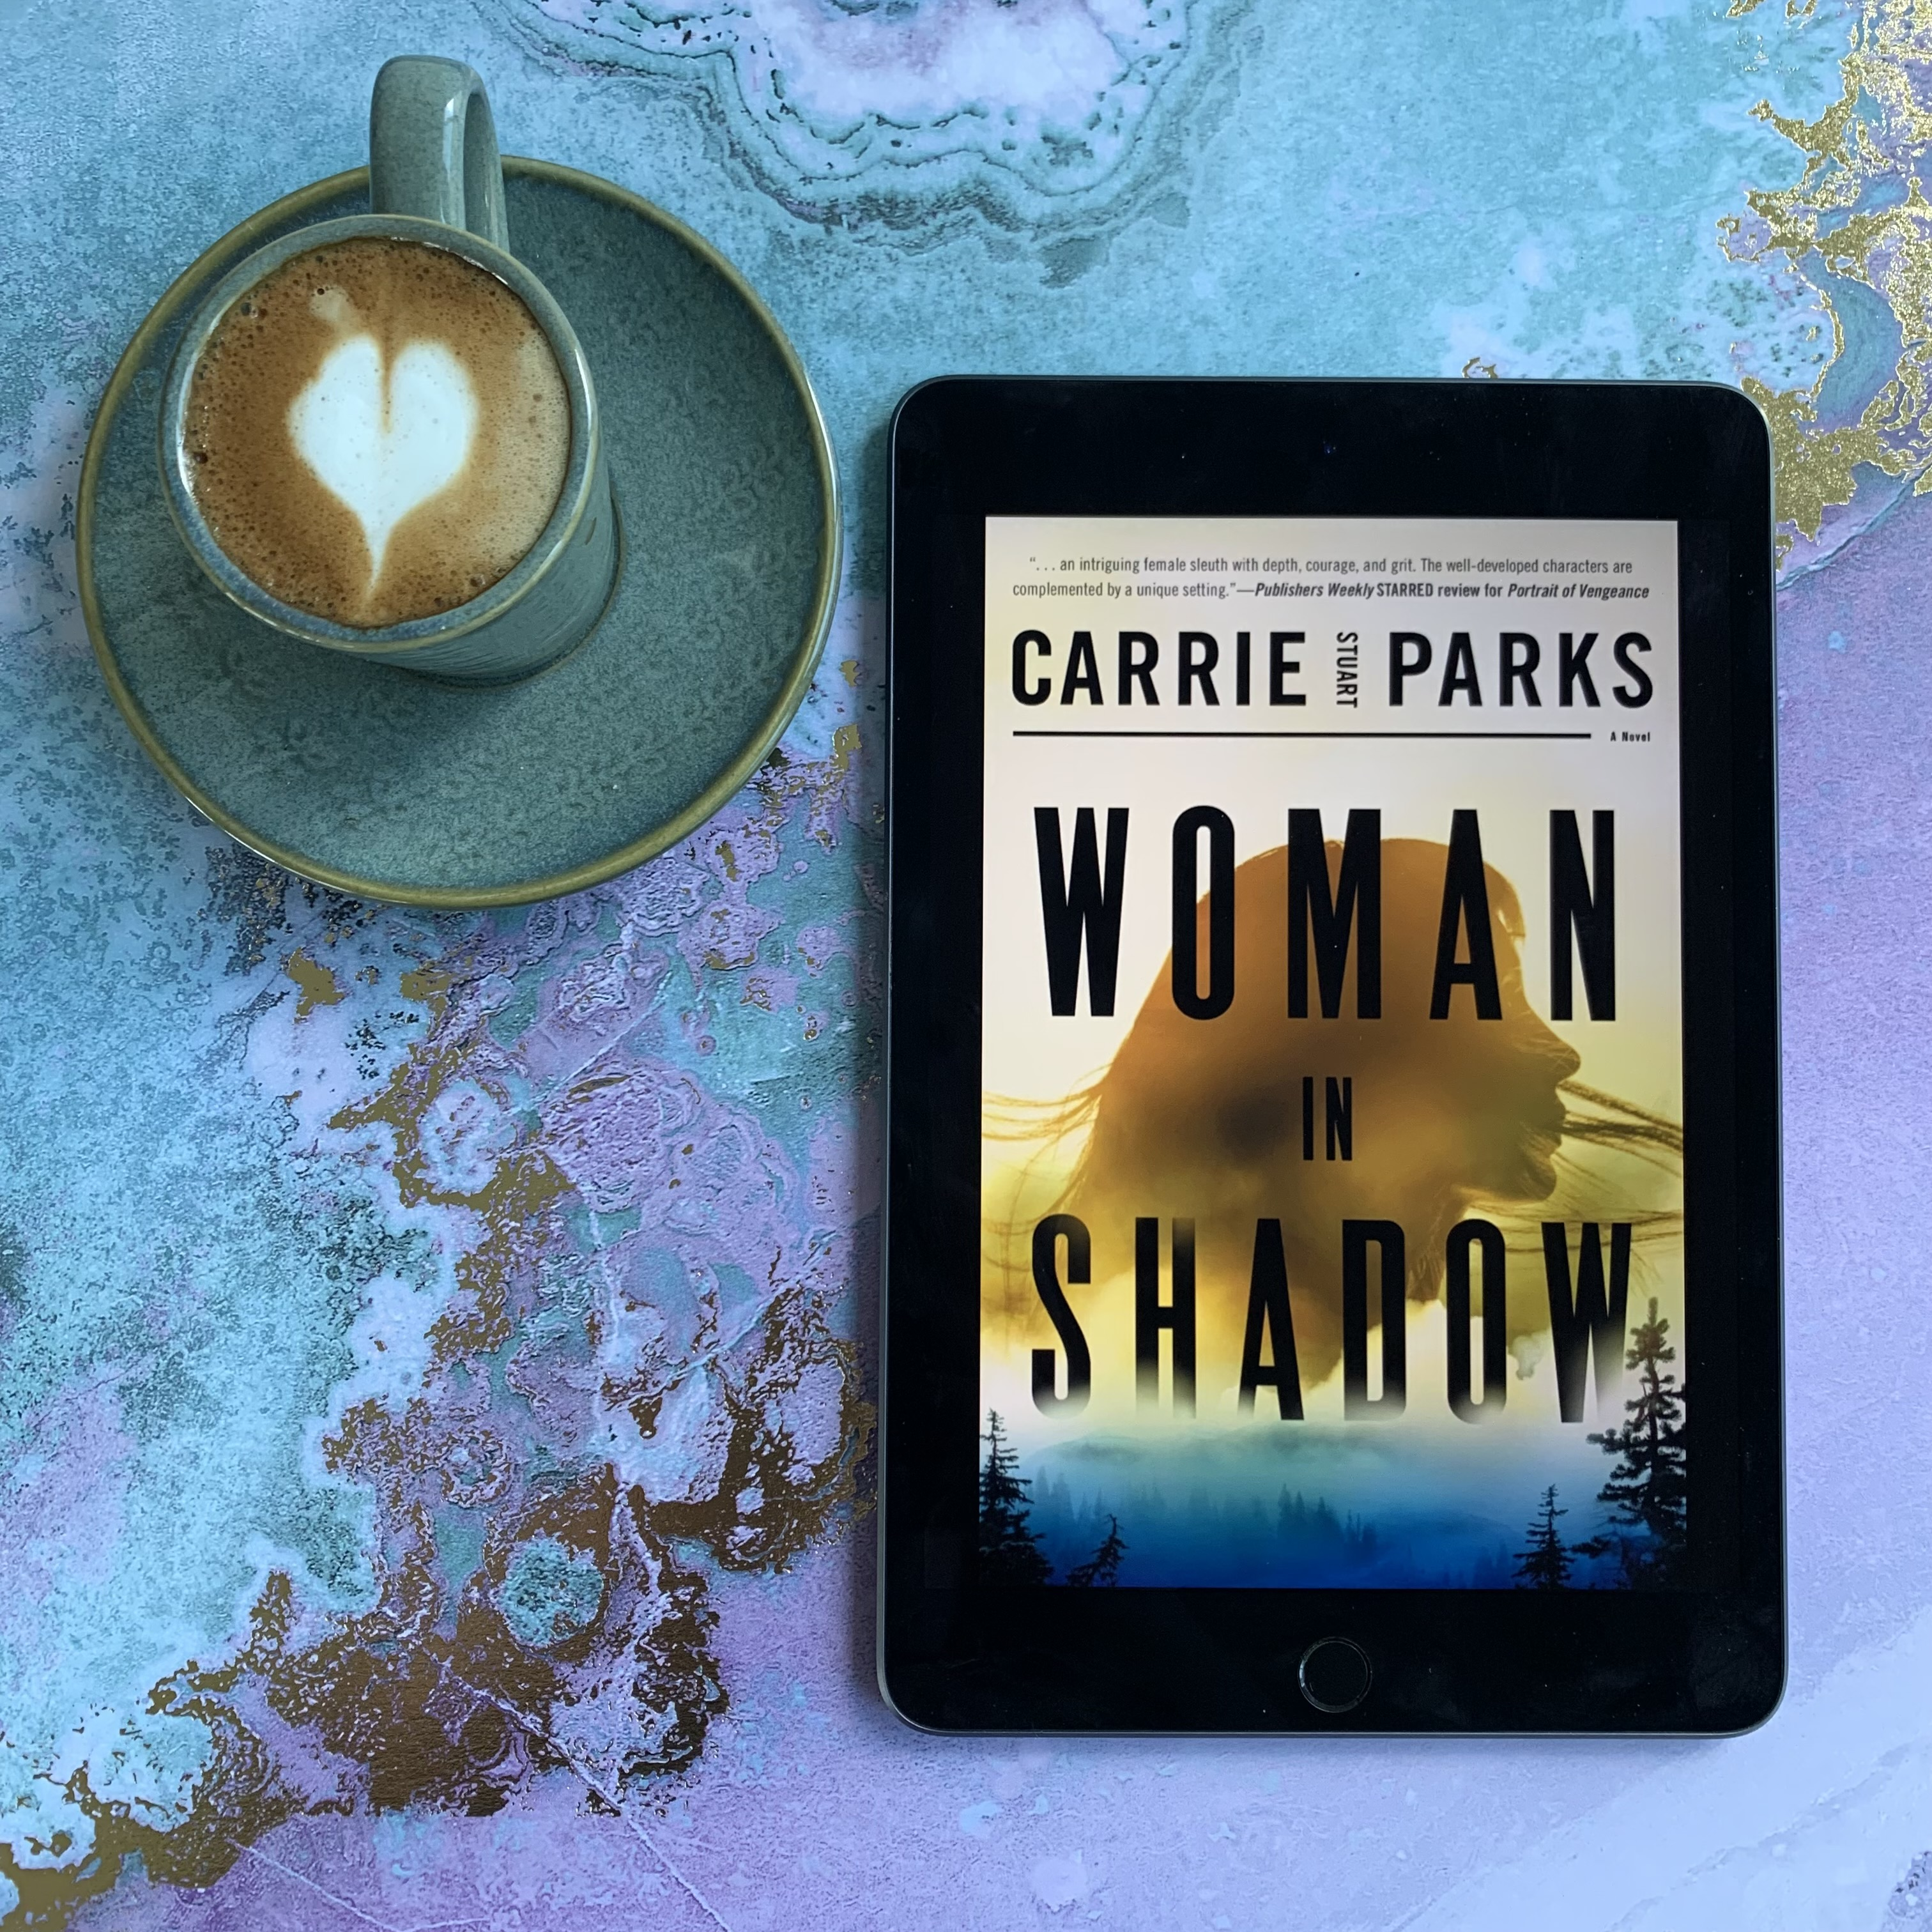 Woman in Shadow book cover and coffee with latte art